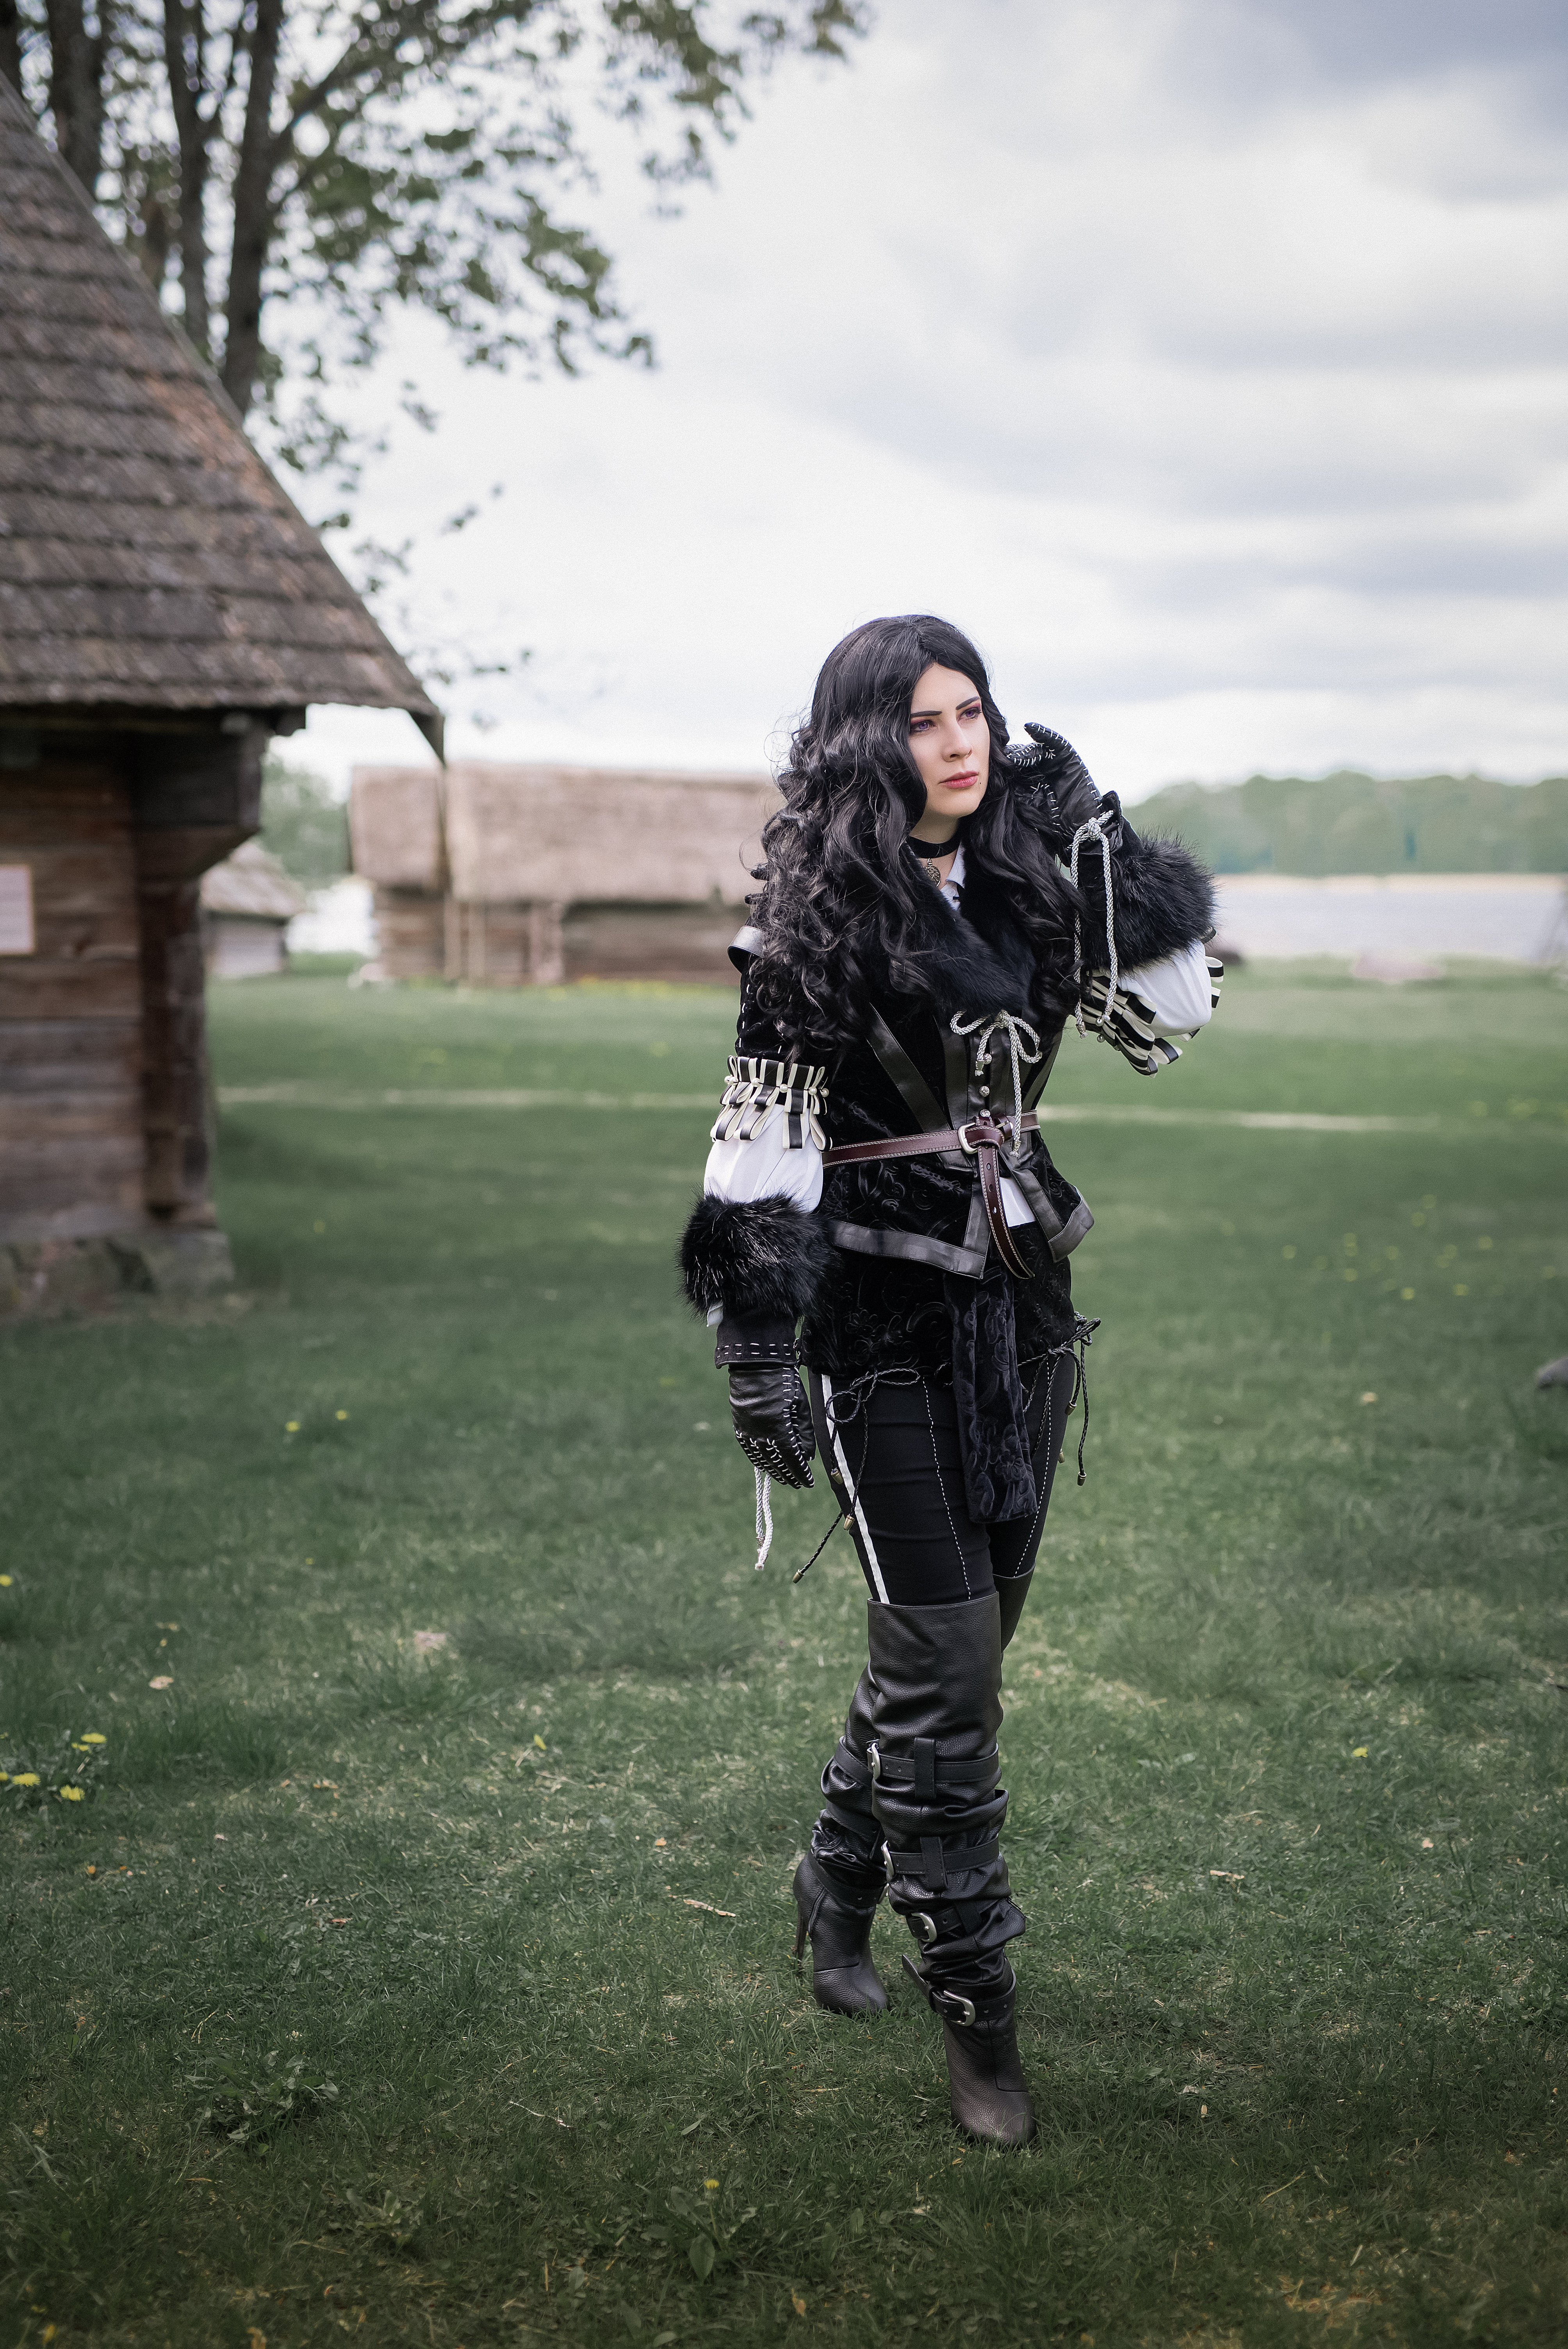 Meeting Yennefer in the White Orchard